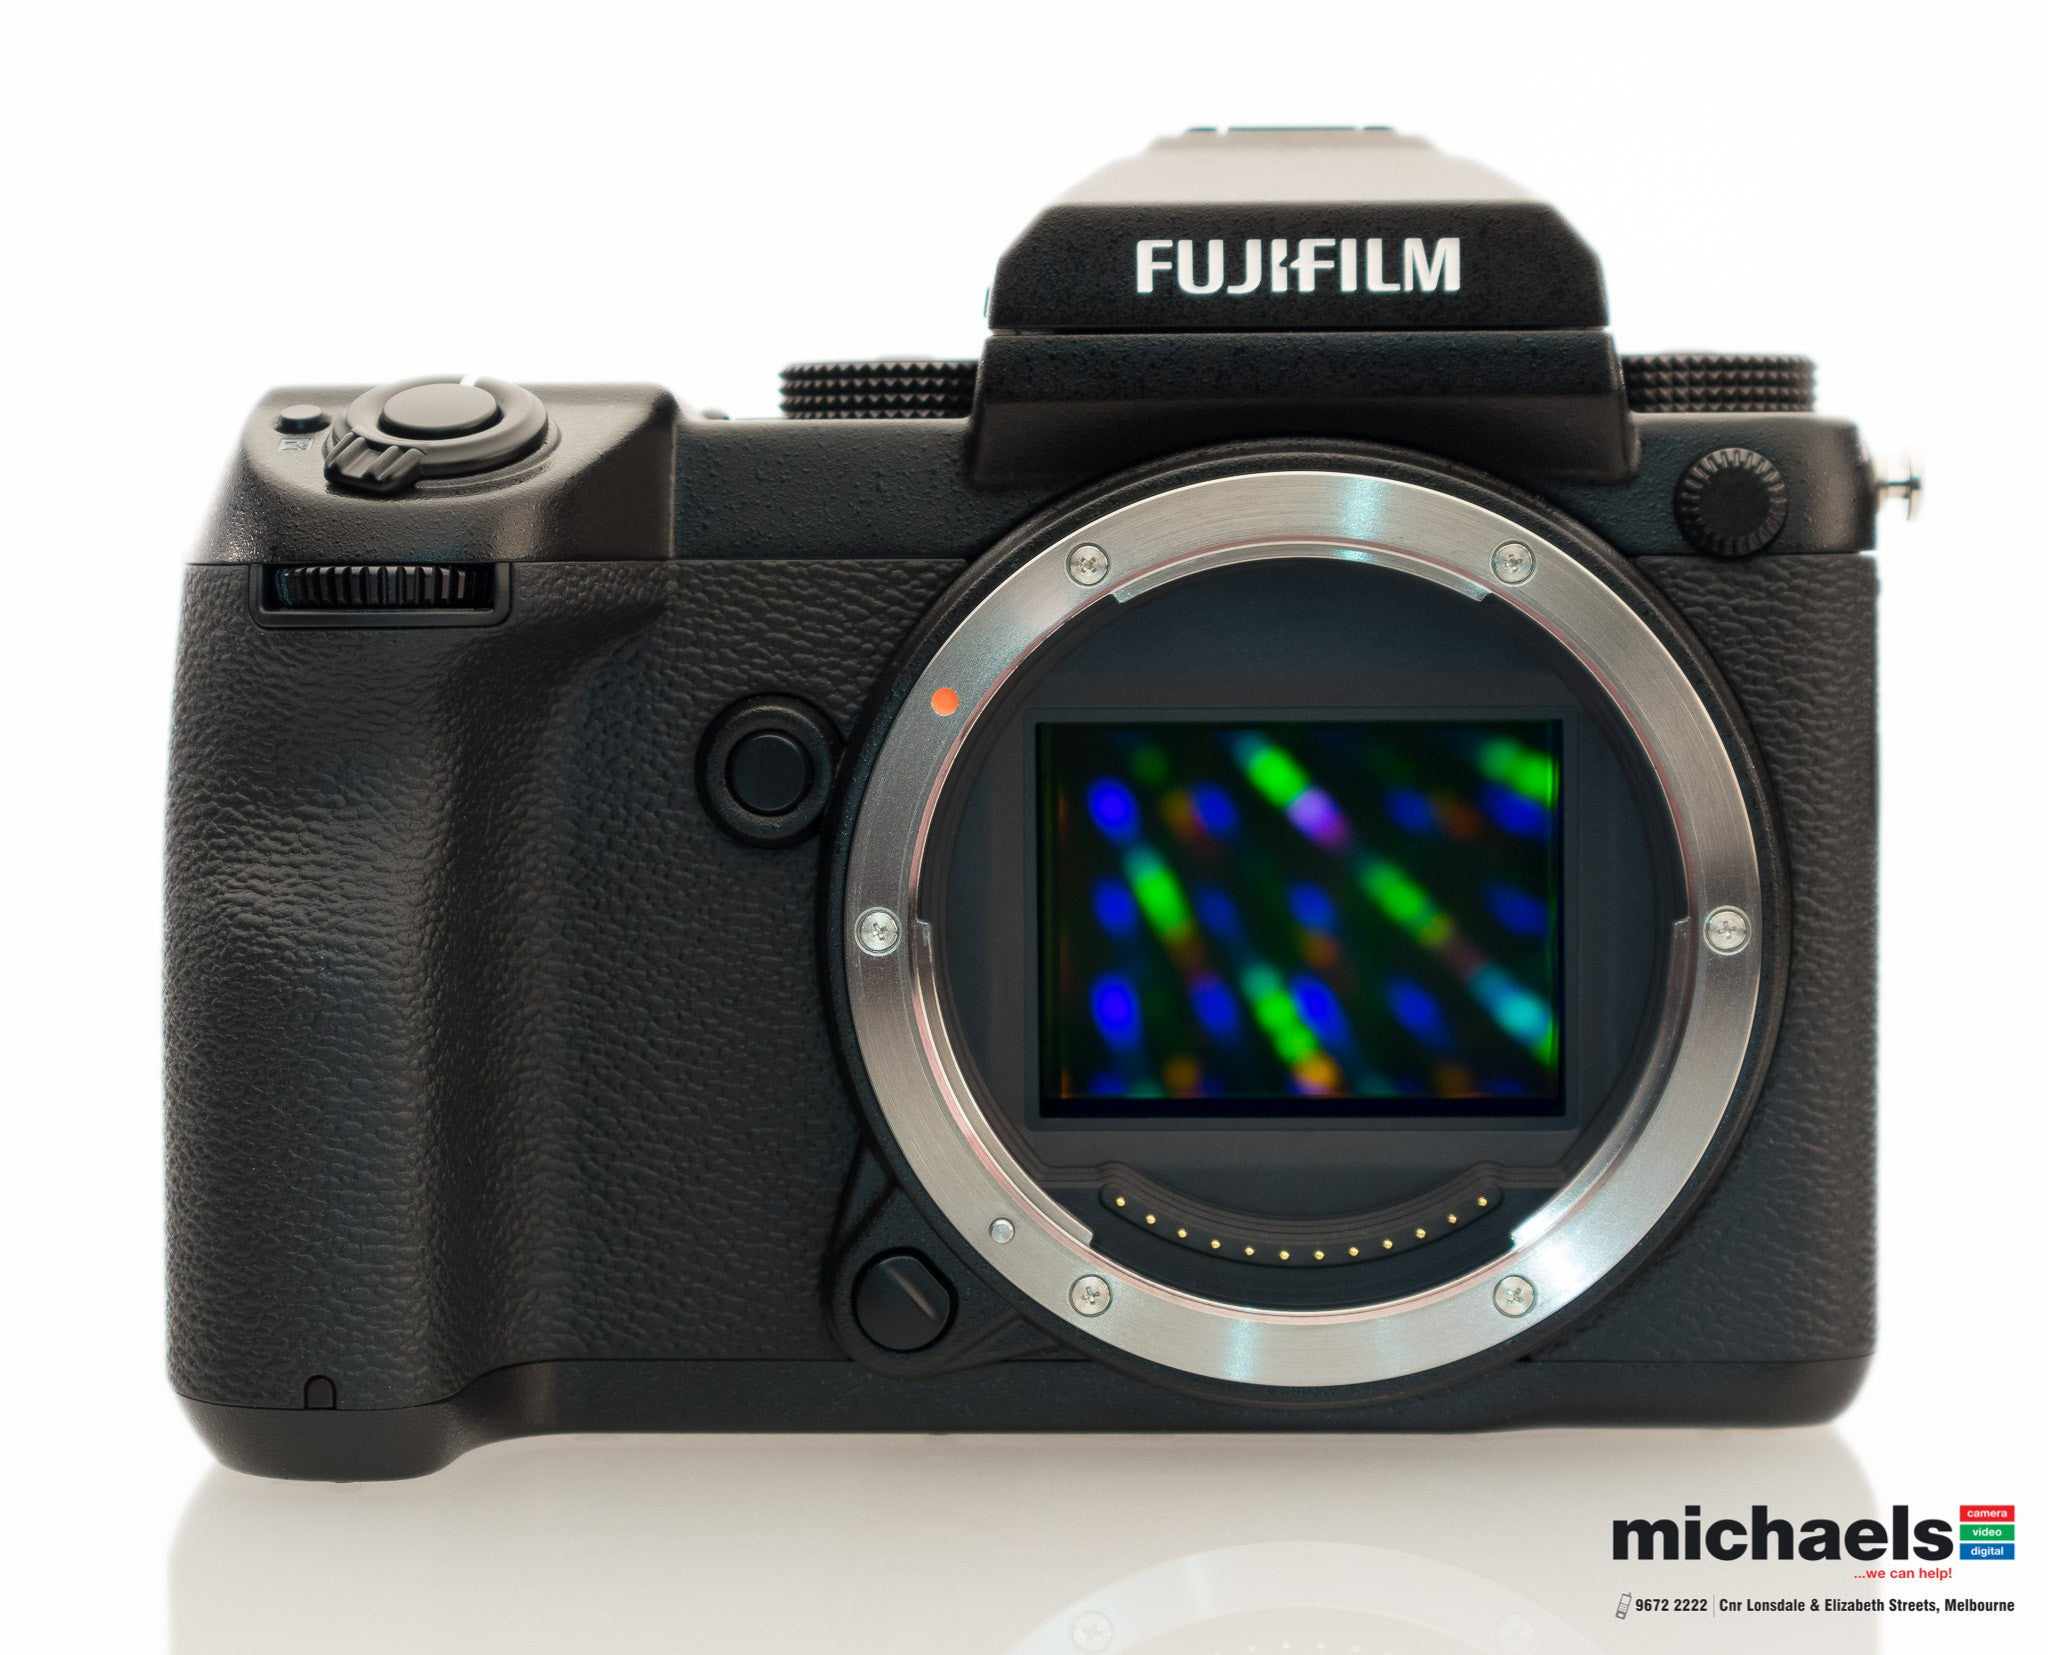 The FUJIFILM GFX 50S is now in Store at michaels camera!